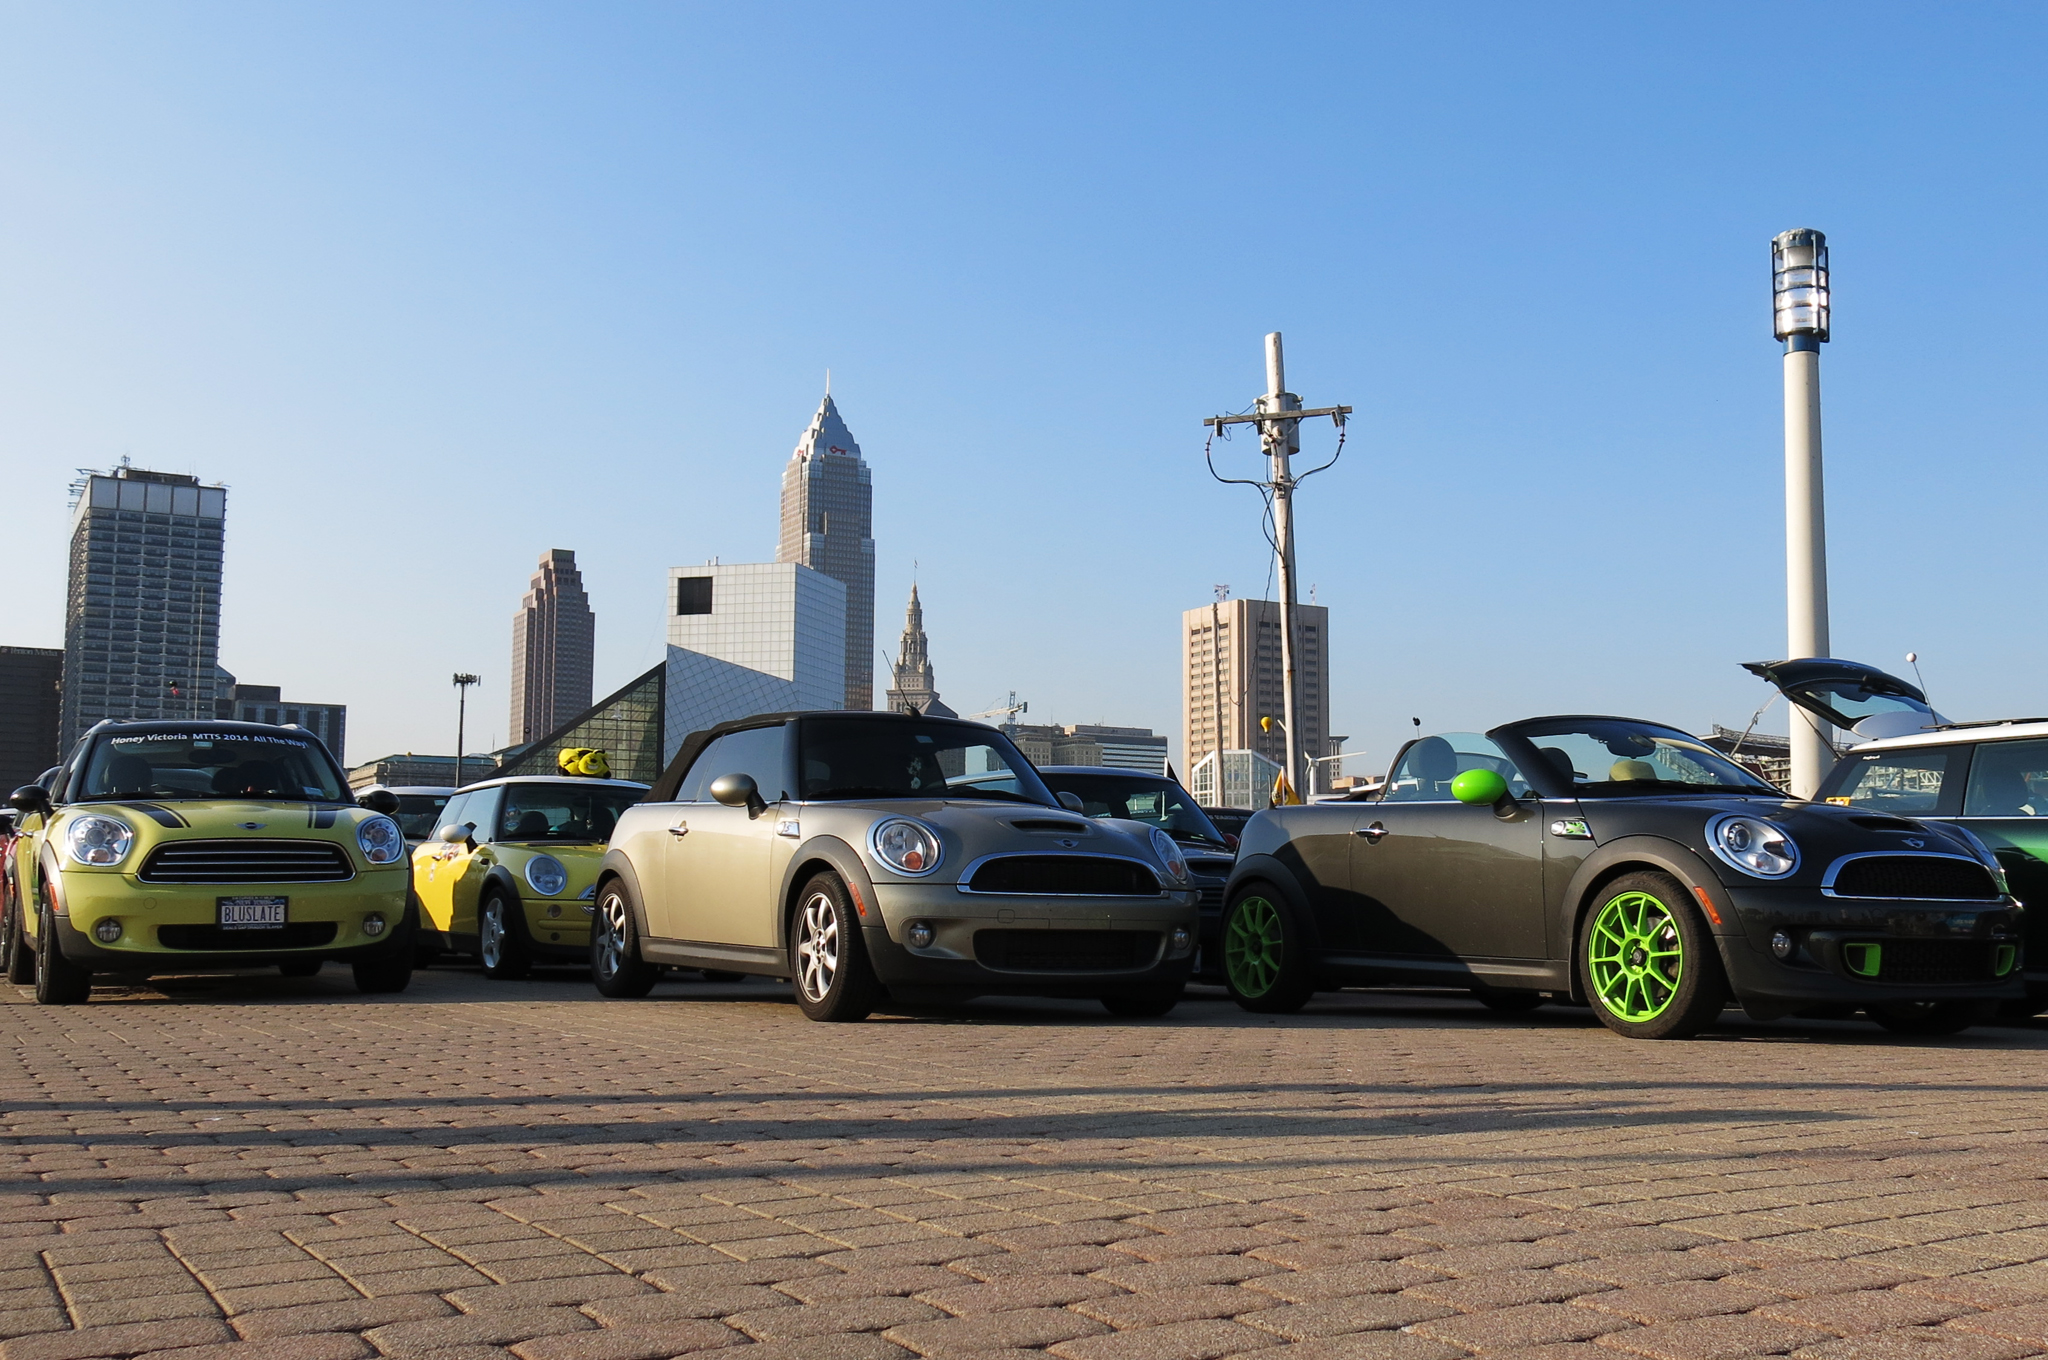 Lined up and ready to go on the 9th Street Pier in Cleveland, OH.